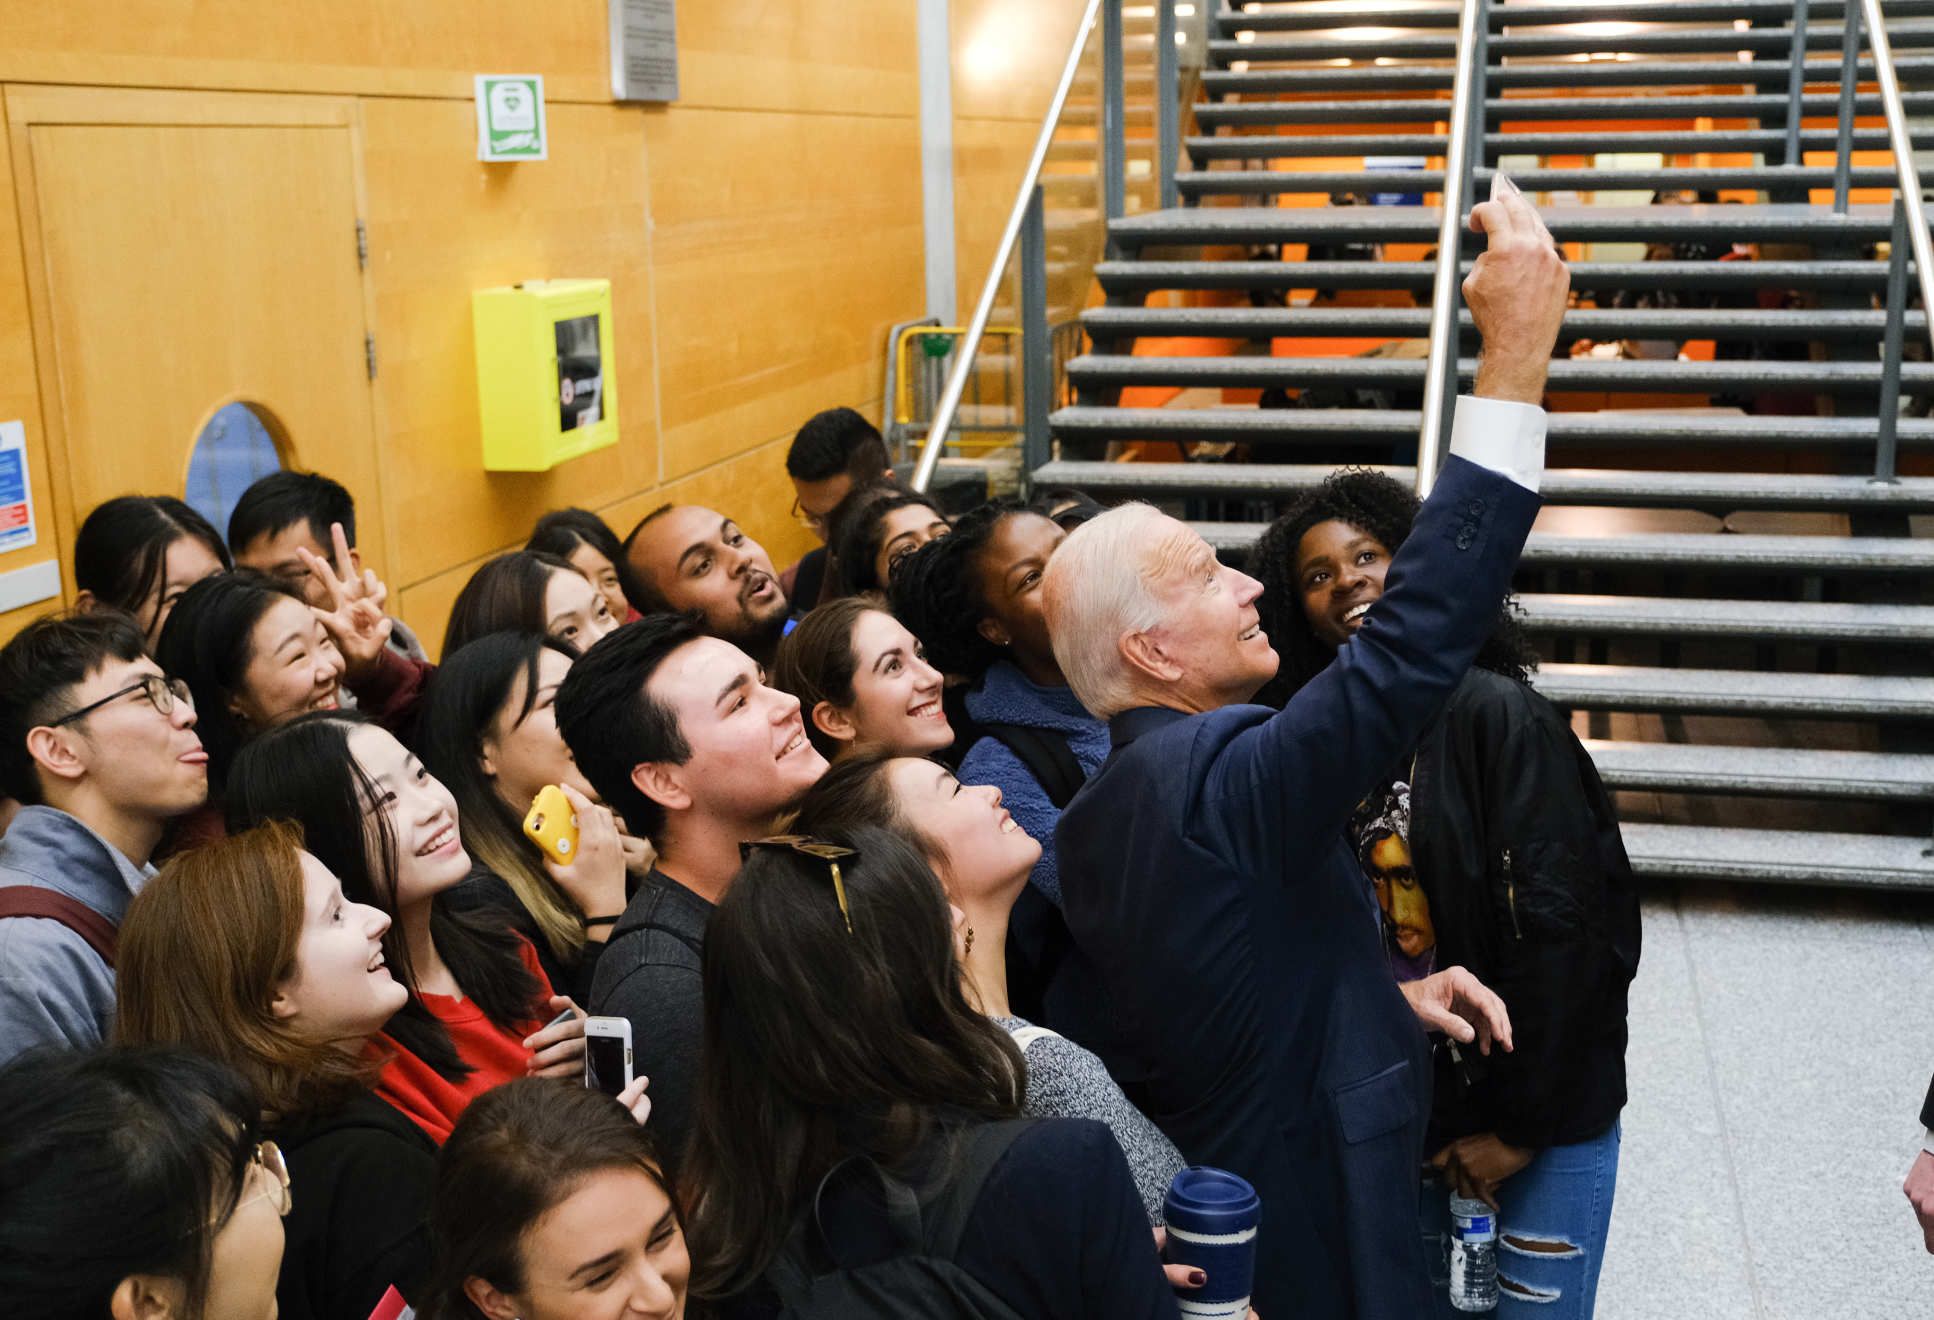 Vice President Biden stopped to pose for a selfie with Imperial students